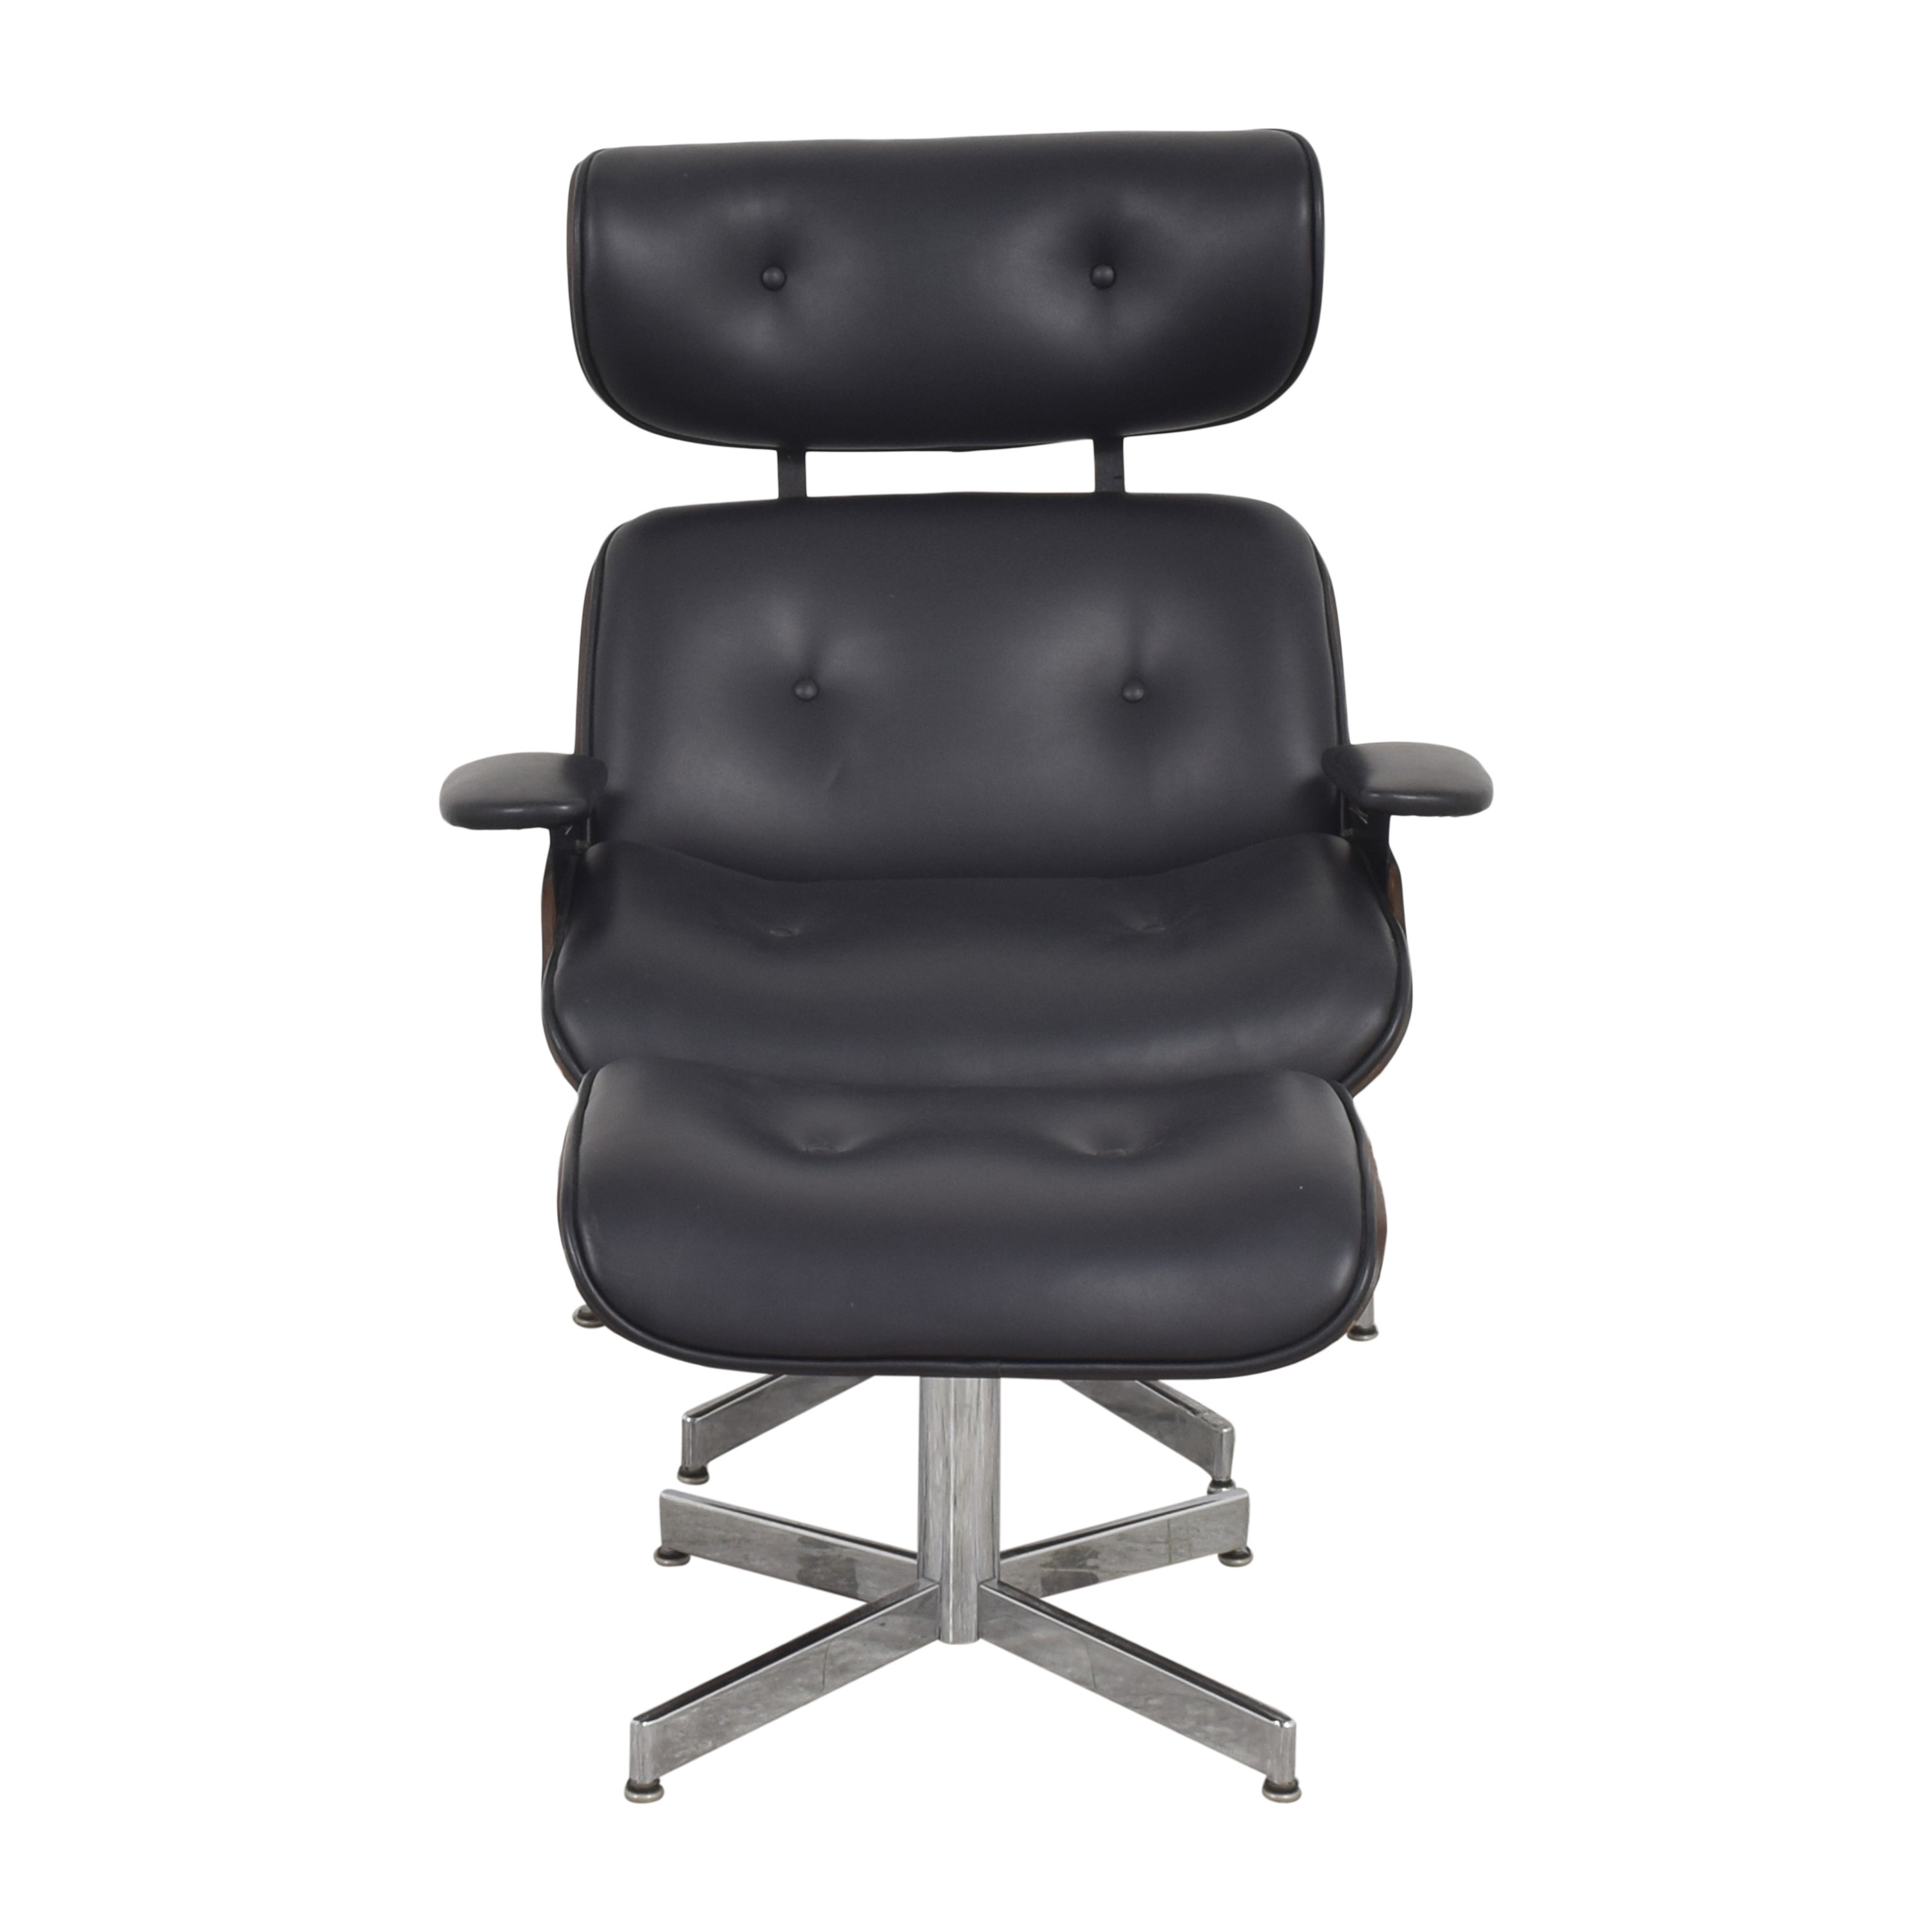 Eames-Style Lounge Chair with Ottoman ma